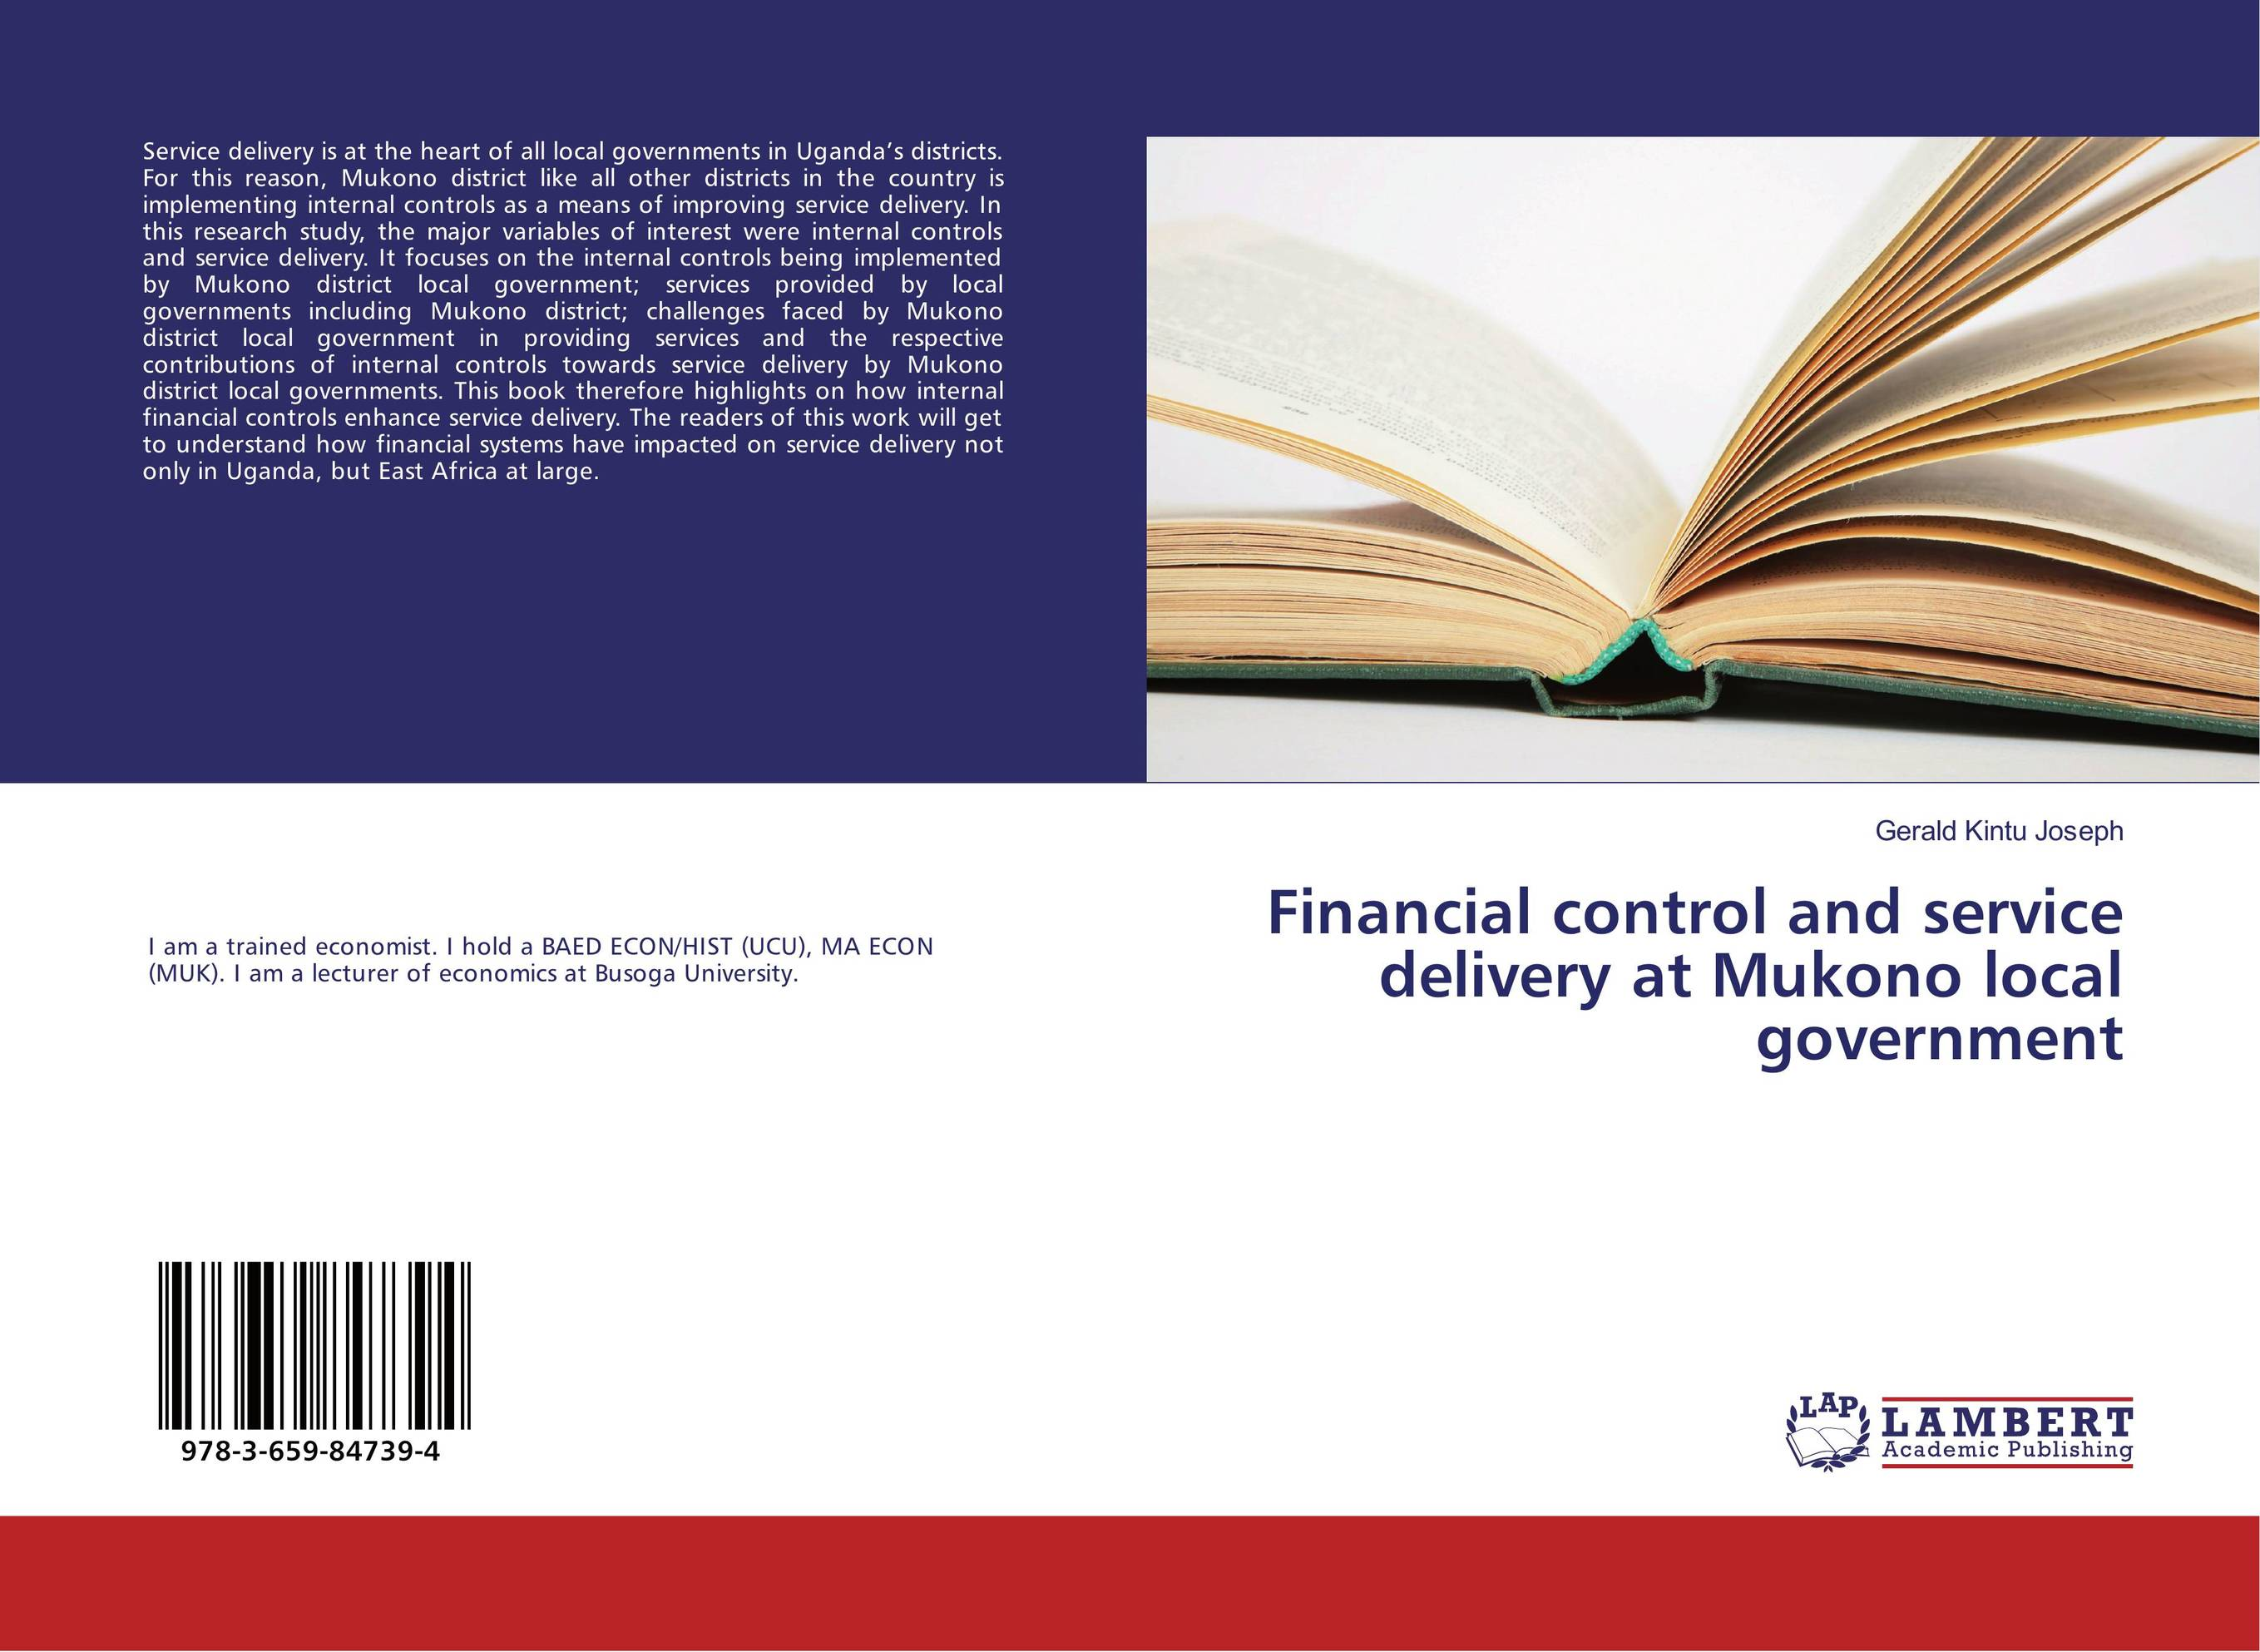 Financial control and service delivery at Mukono local government